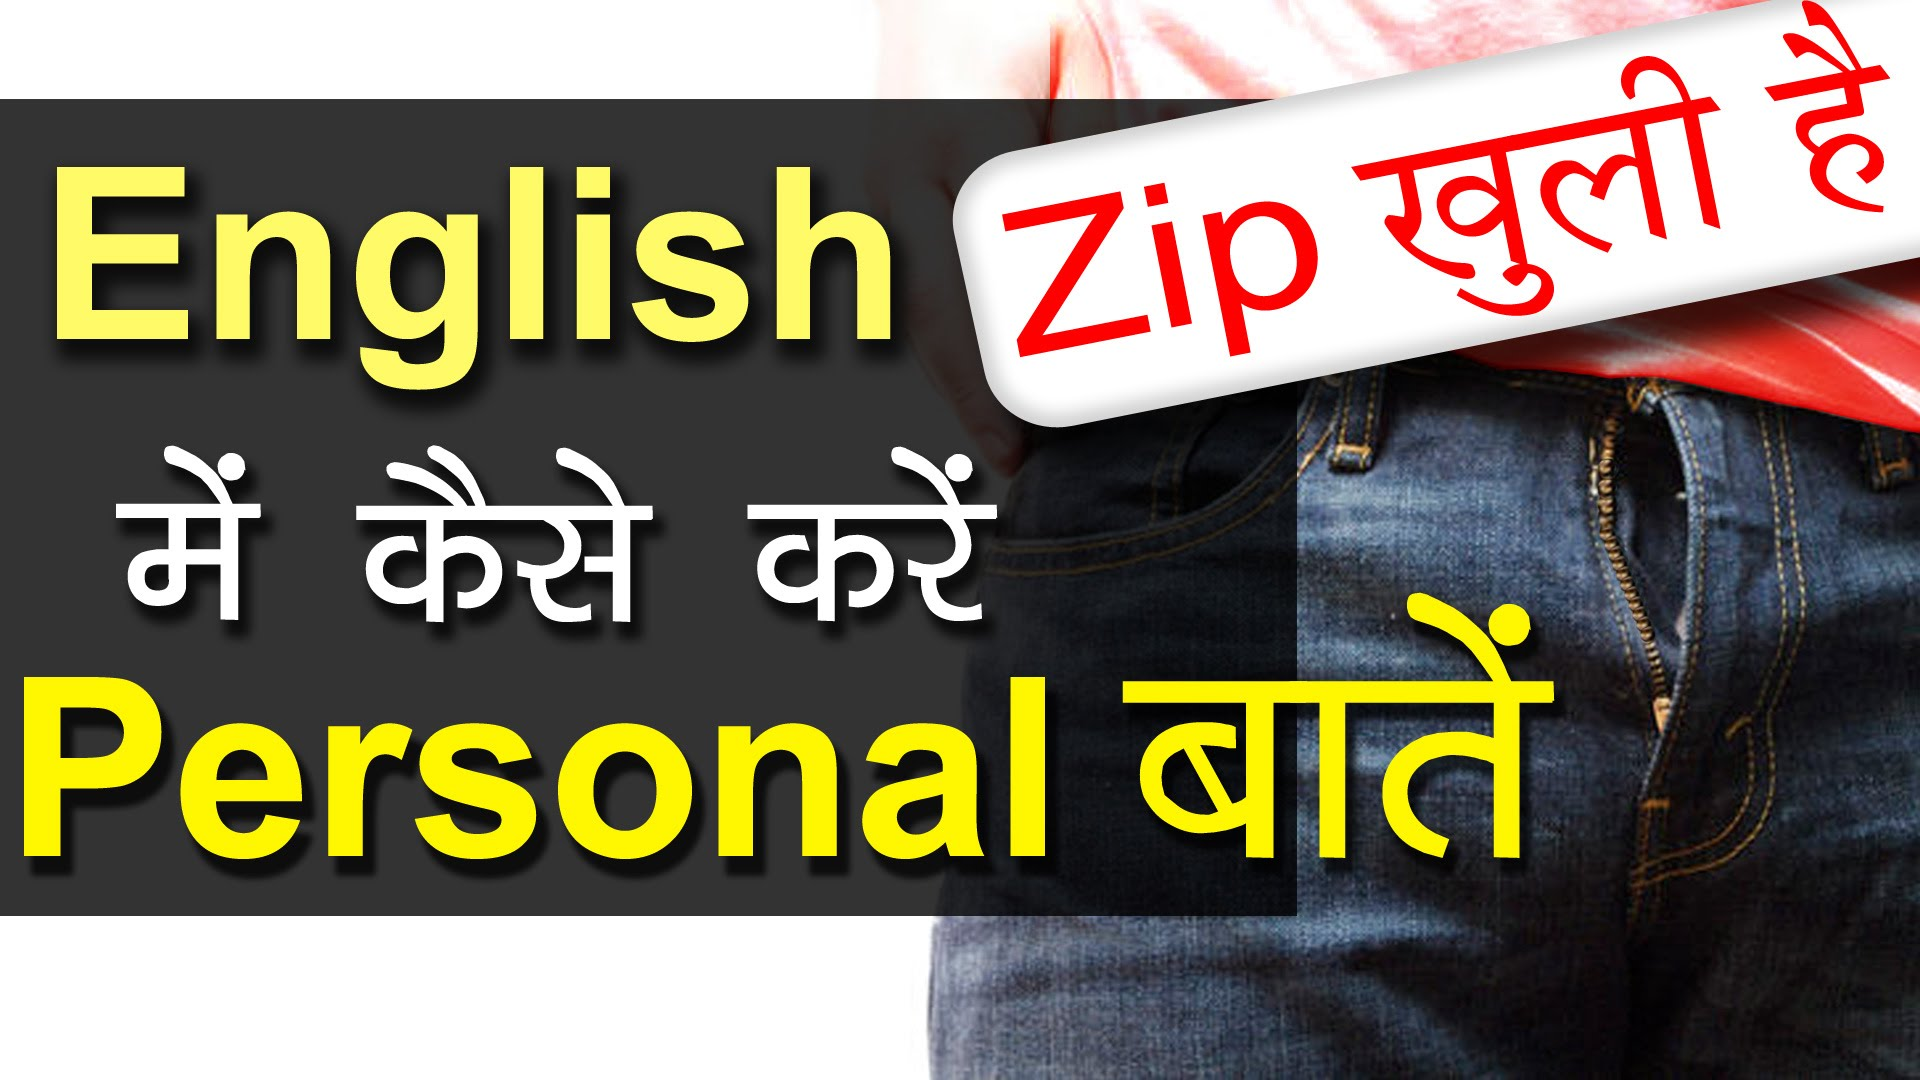 Daily use English sentences - zip , shoe lace, shirt Spoken English fluency